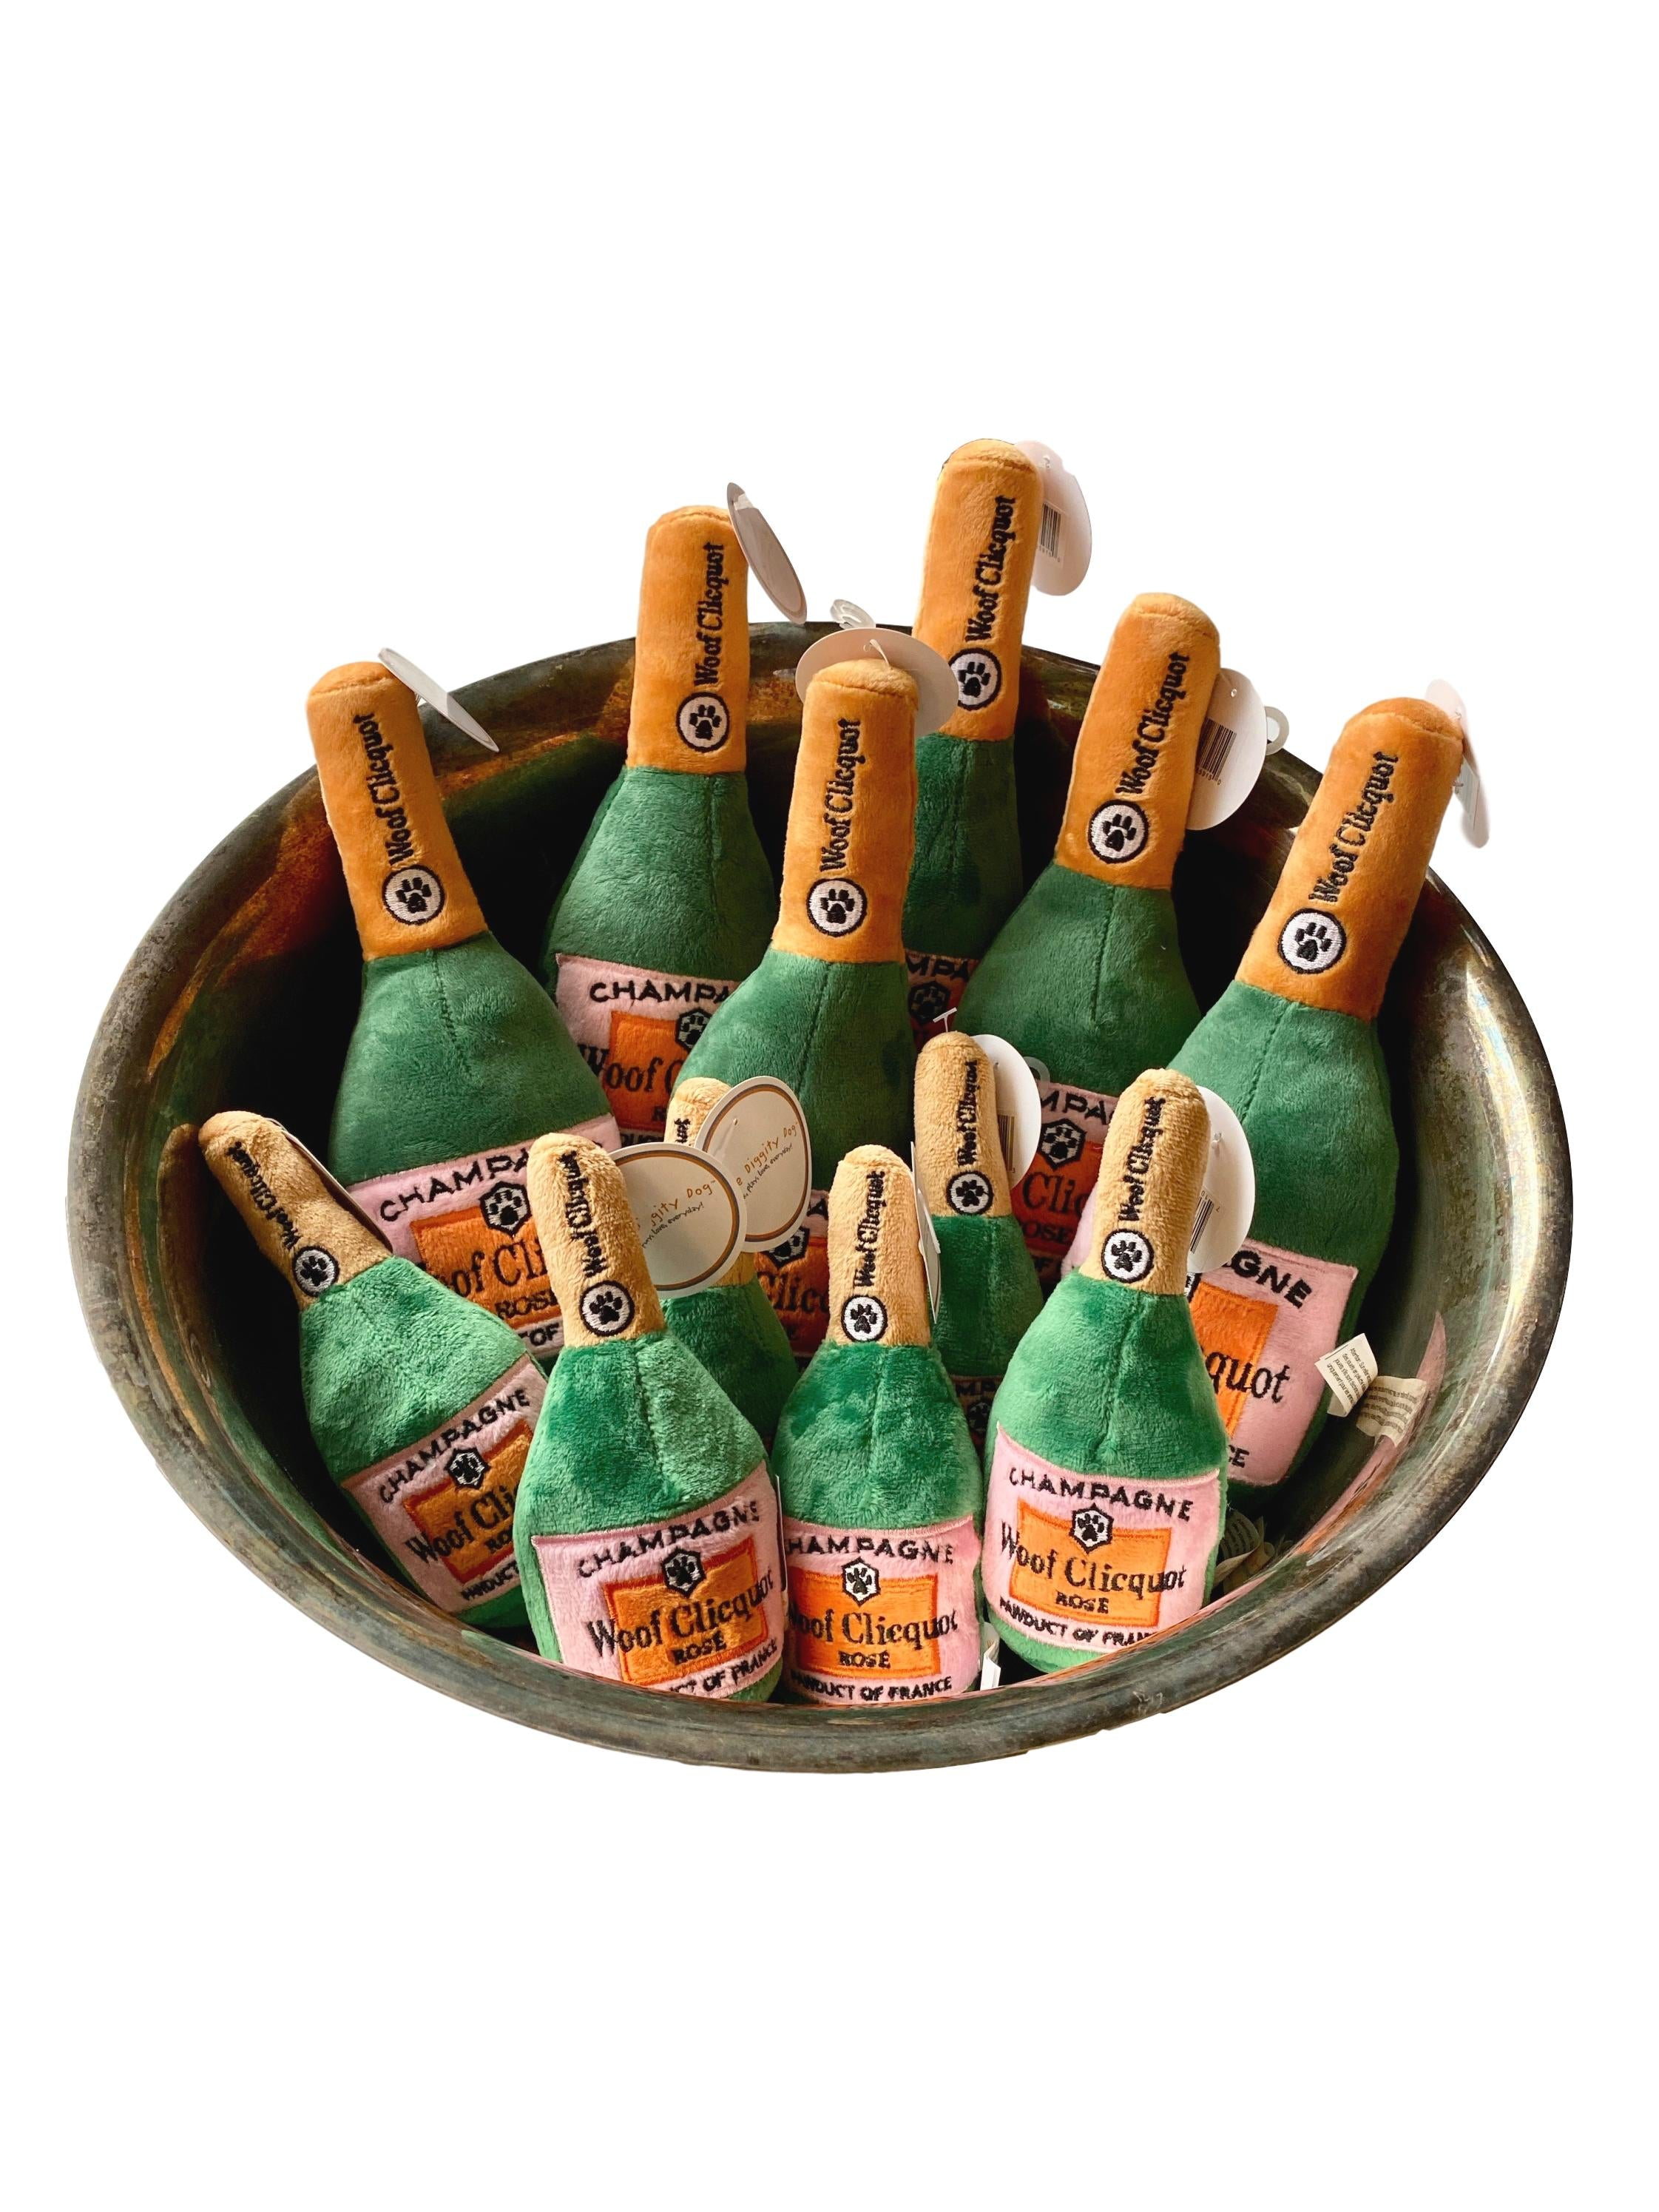 Woof Clicquot Rosé Champagne Bottle Dog Toy - Giften Market